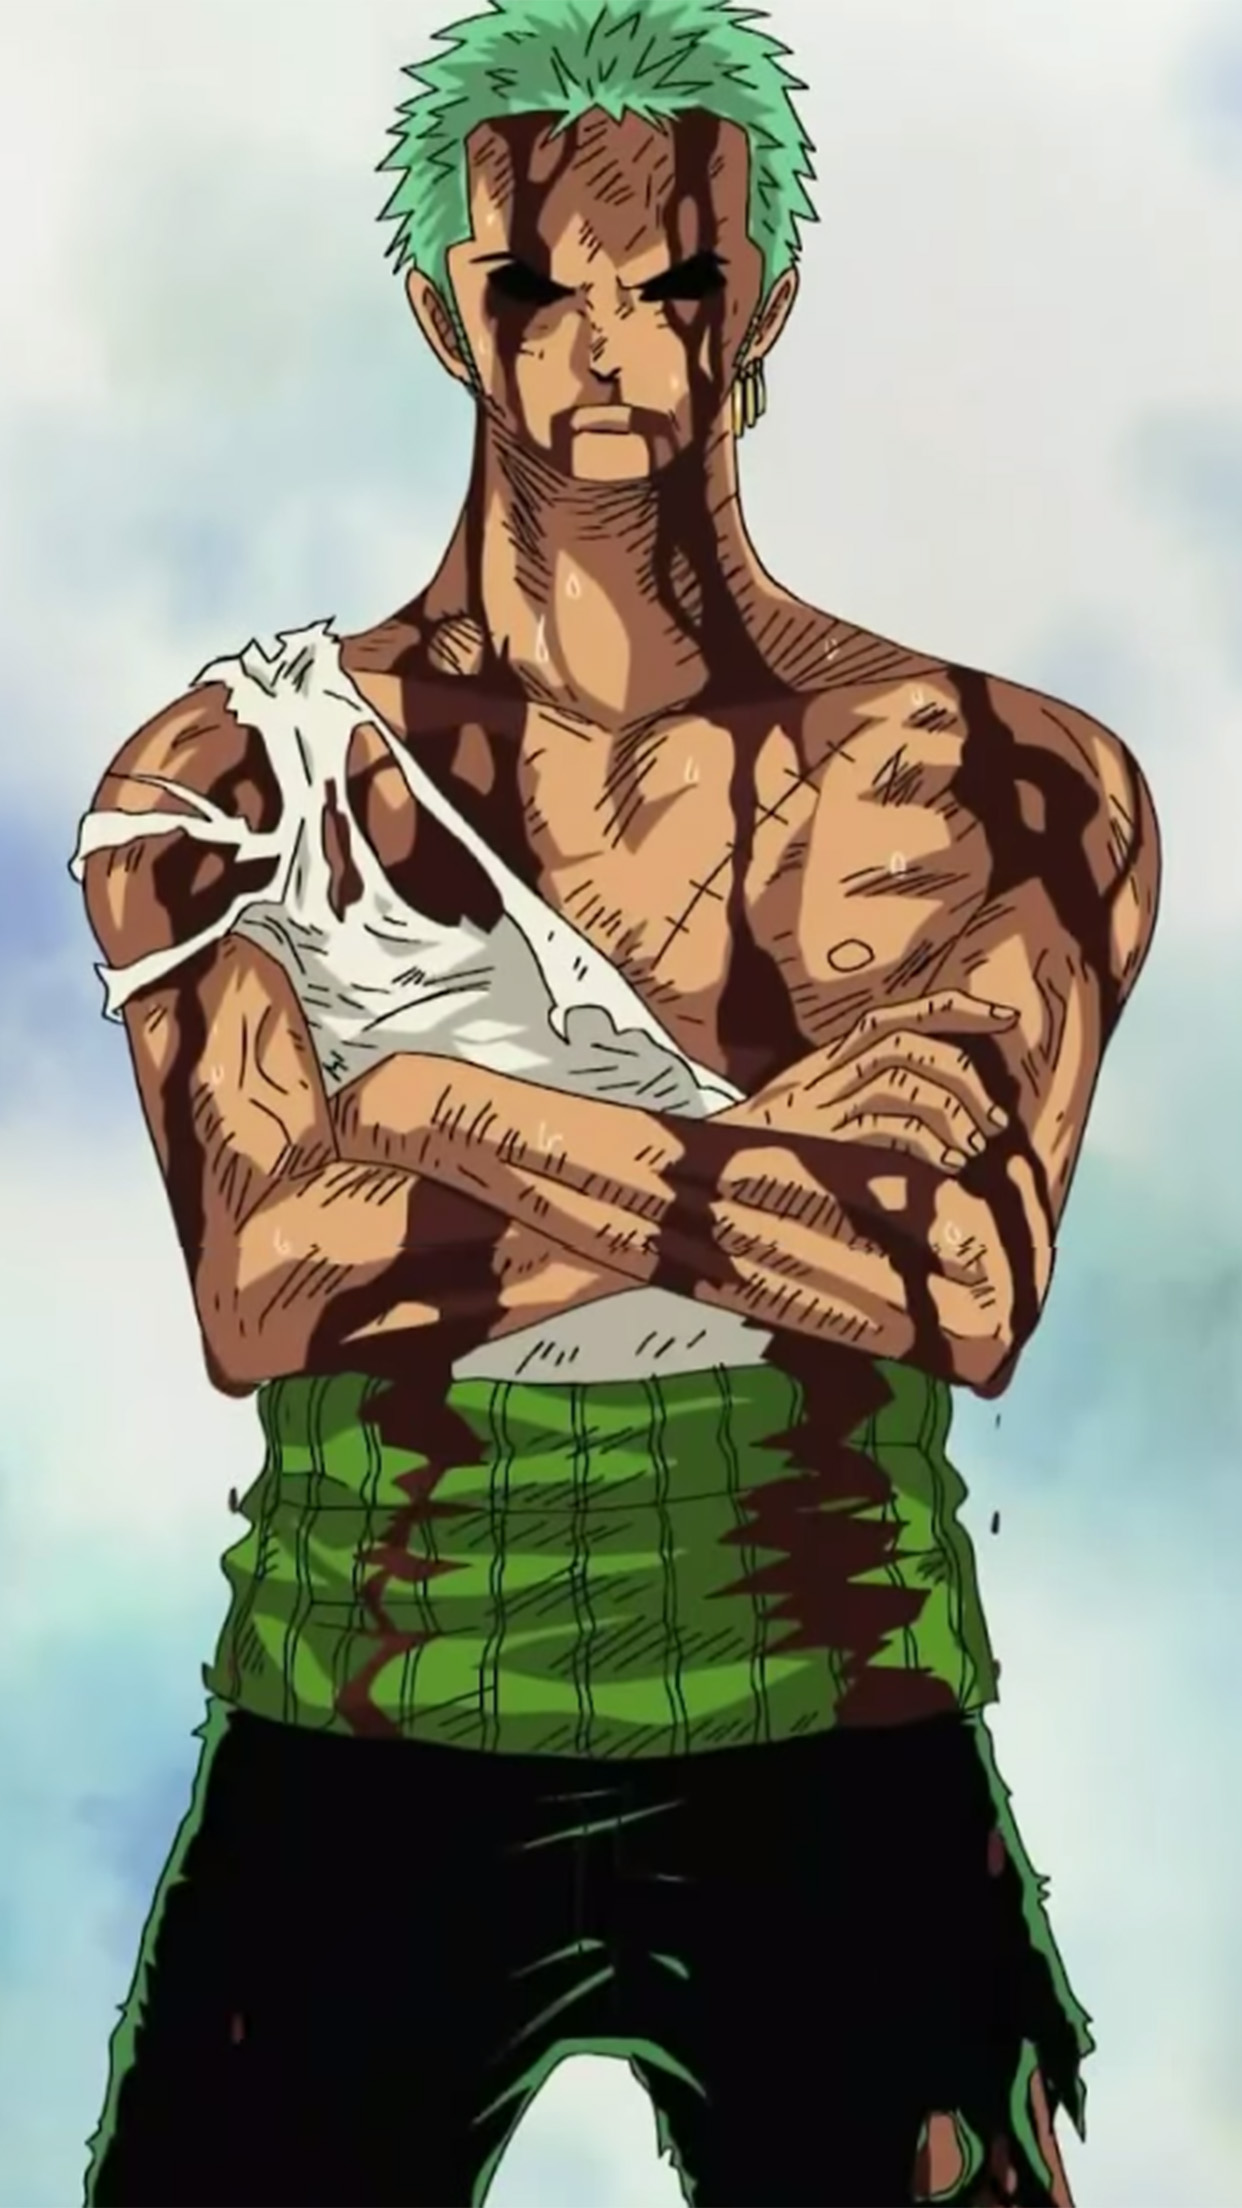 One Piece Roronoa Zoro 3Wallpapers iPhone Parallax Roronoa Zoro